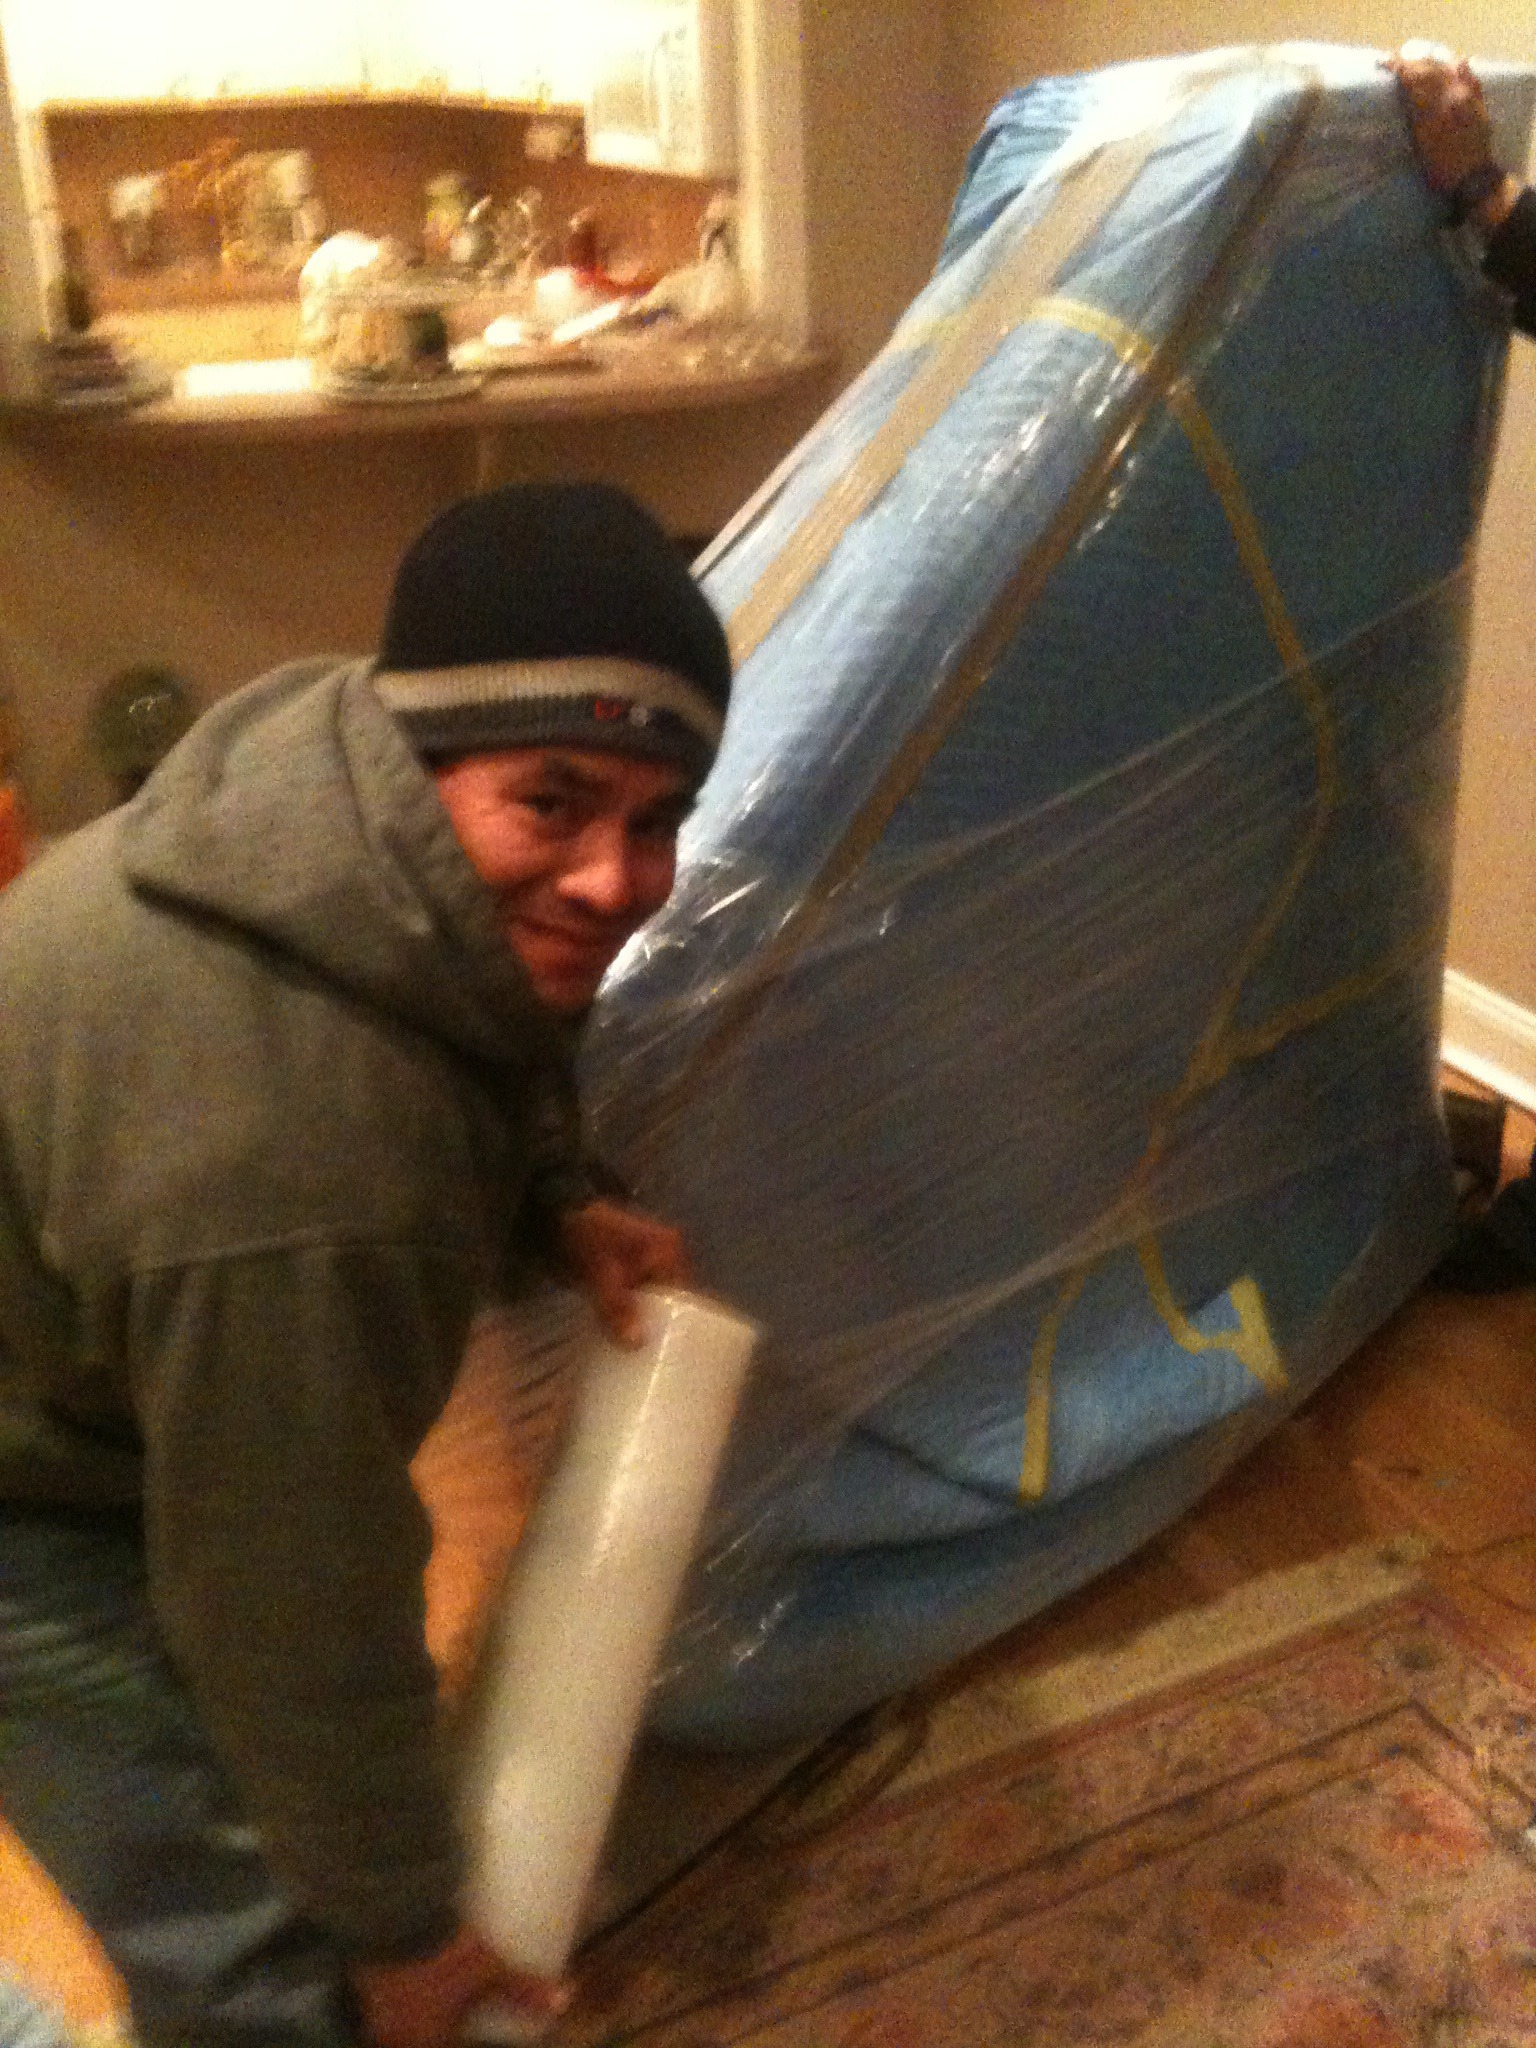 Moving Company Burlington - RESIDENTIAL RELOCATION SERVICES